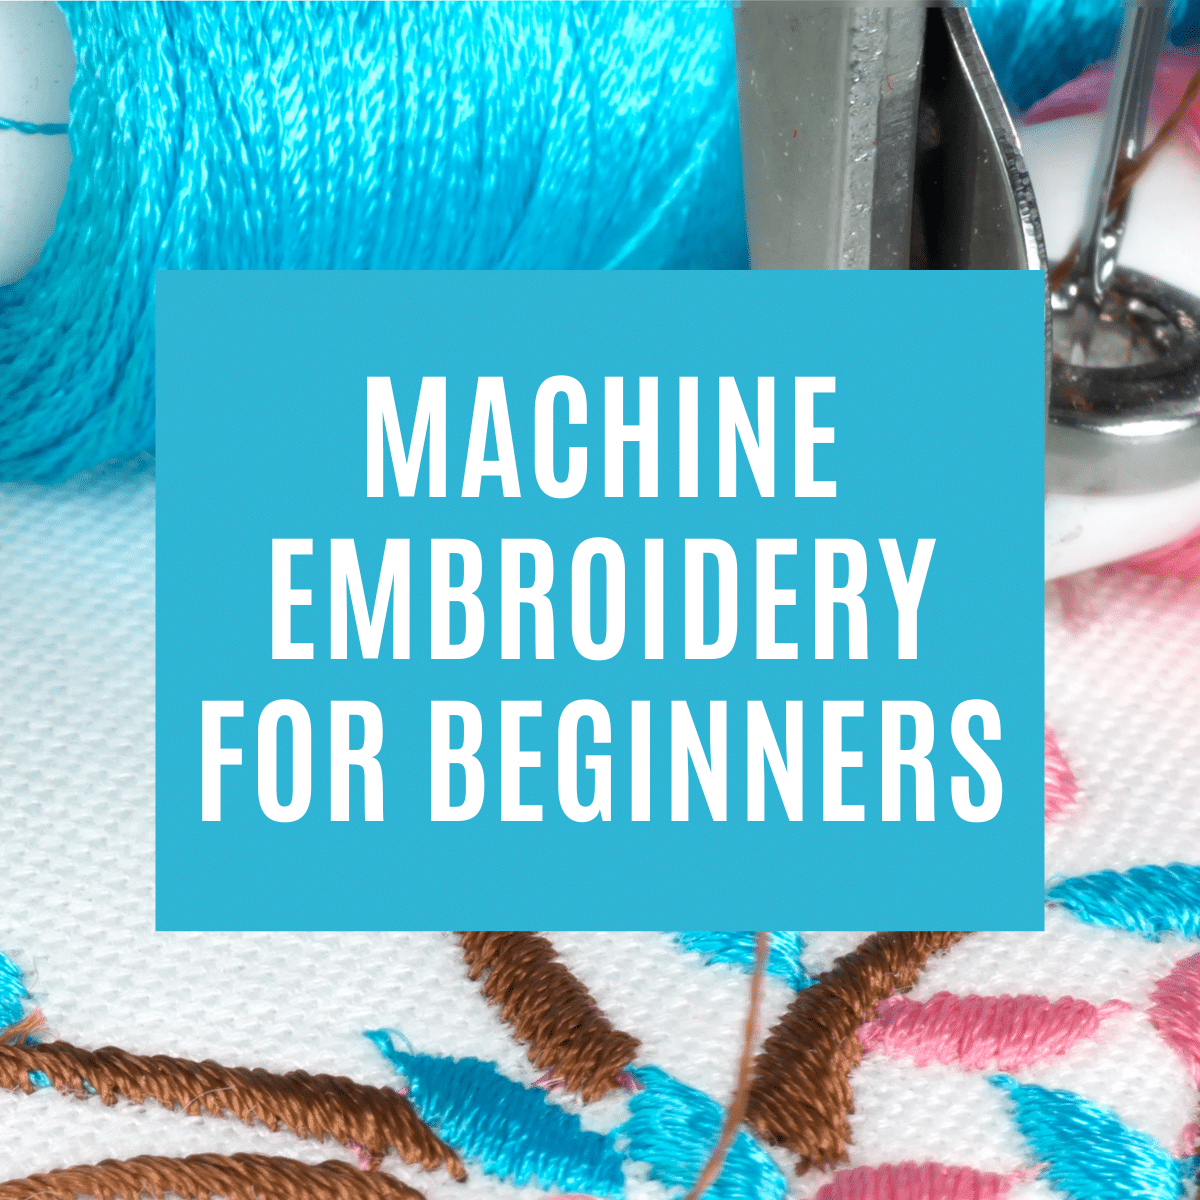 How to Use an Embroidery Machine (for Beginners!)